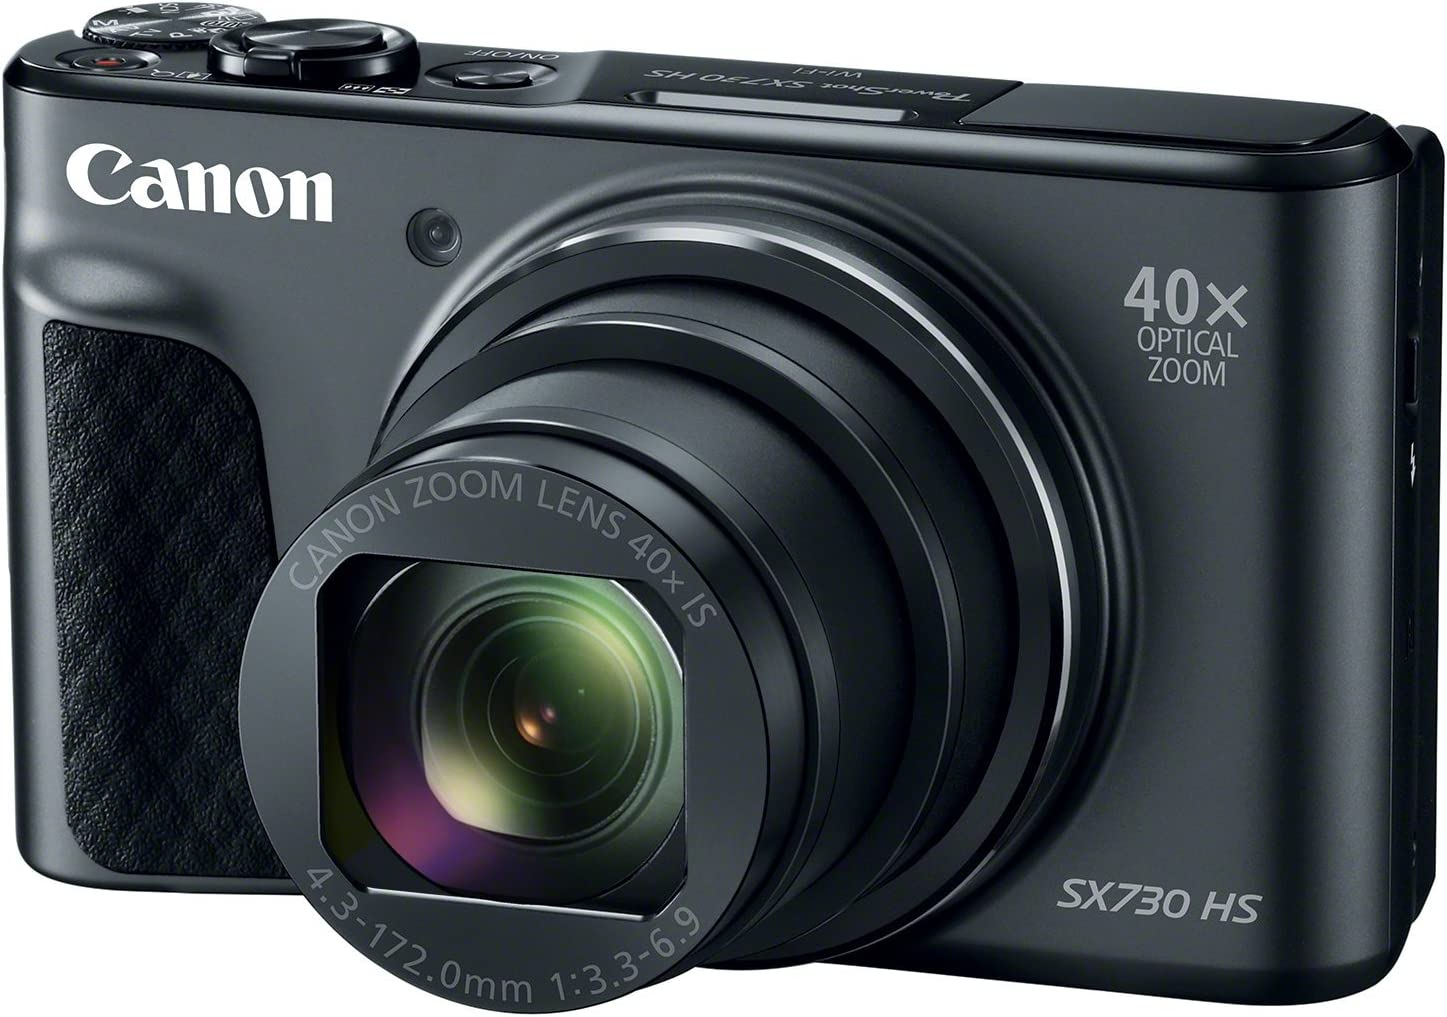 Canon PowerShot SX730 Digital Camera w/40x Optical Zoom & 3 Inch Tilt LCD - Wi-Fi, NFC, Bluetooth Enabled (Black) (Renewed)